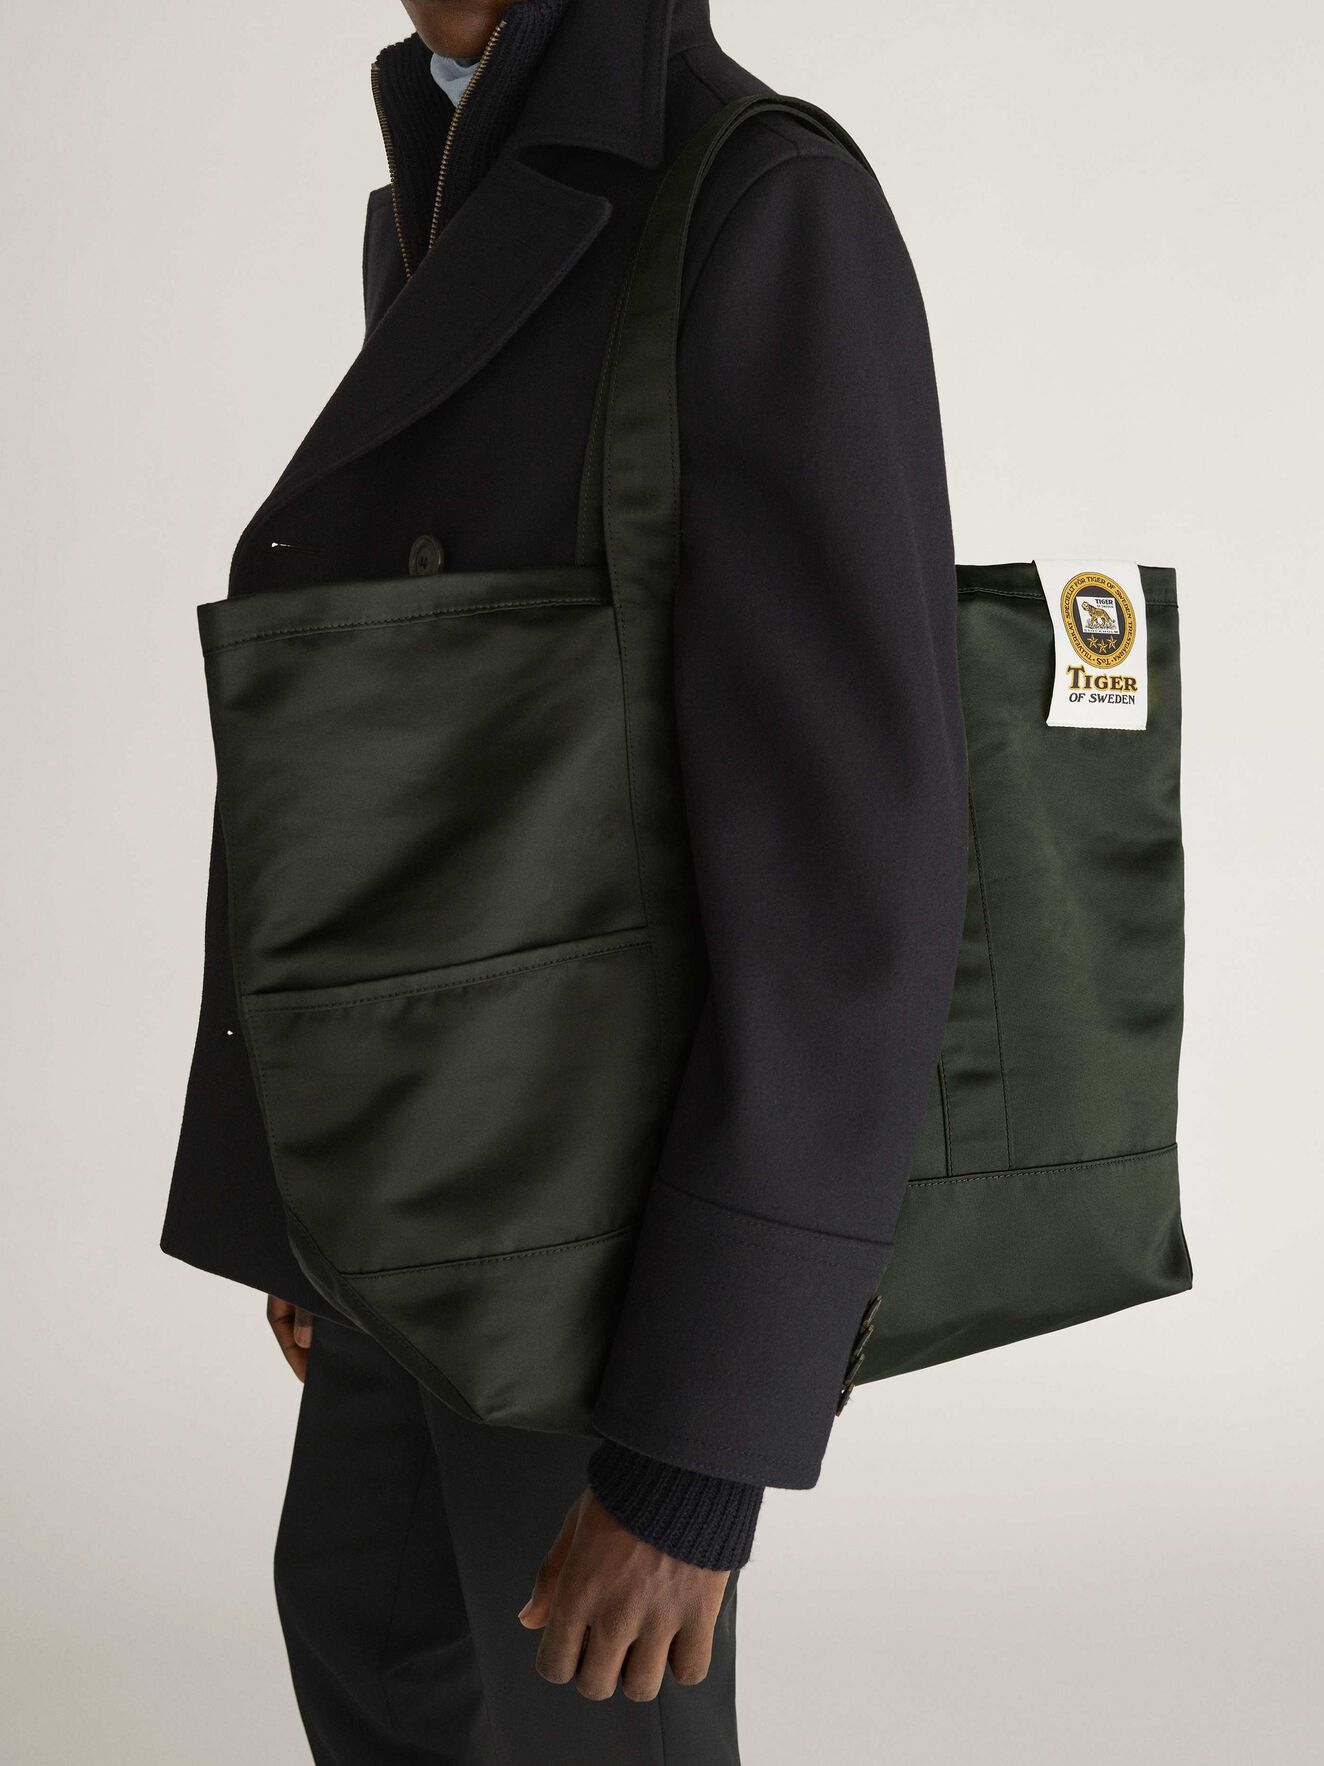 Drop S Tote  in Dark green from Tiger of Sweden